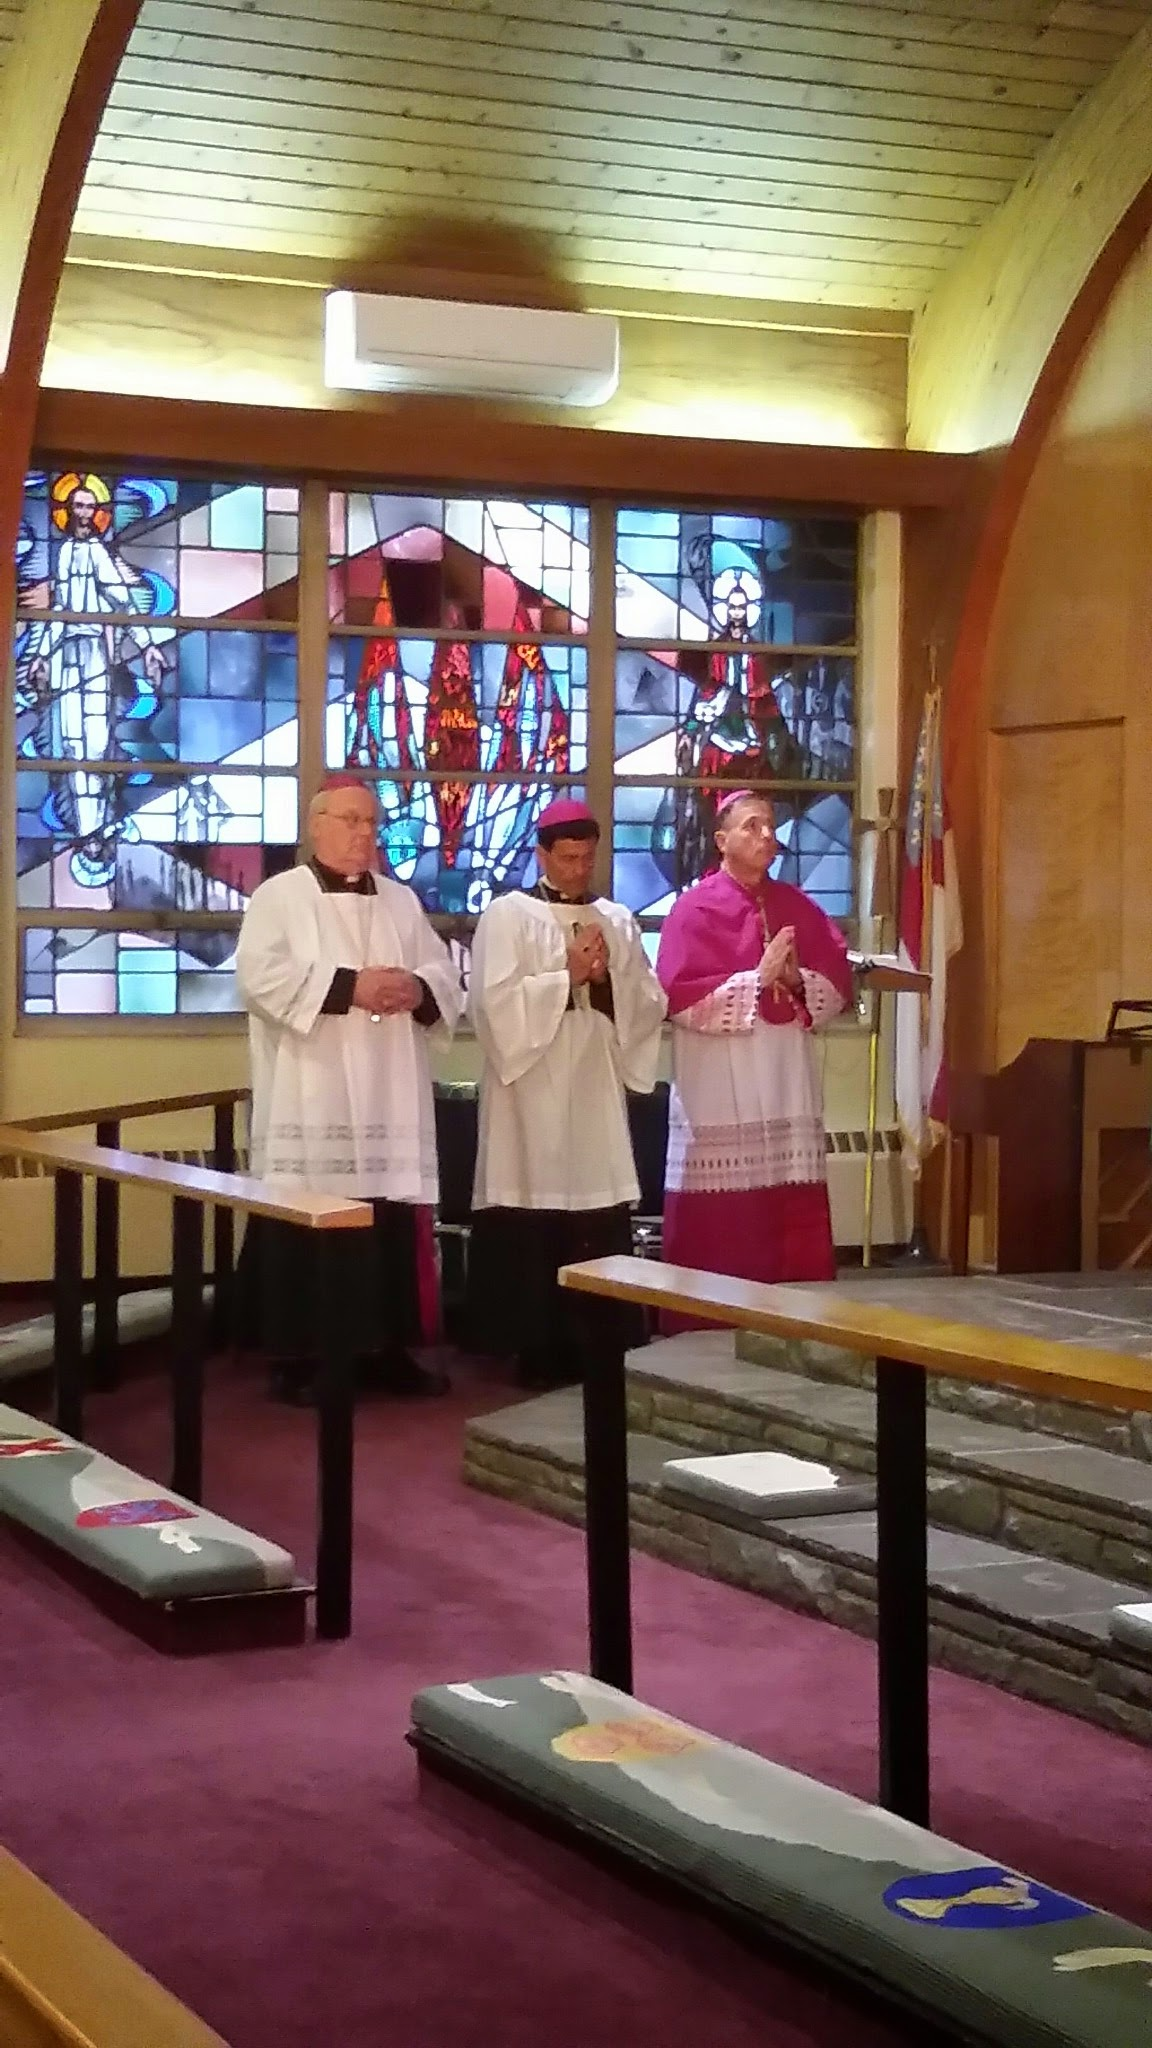 Bishops at prayer